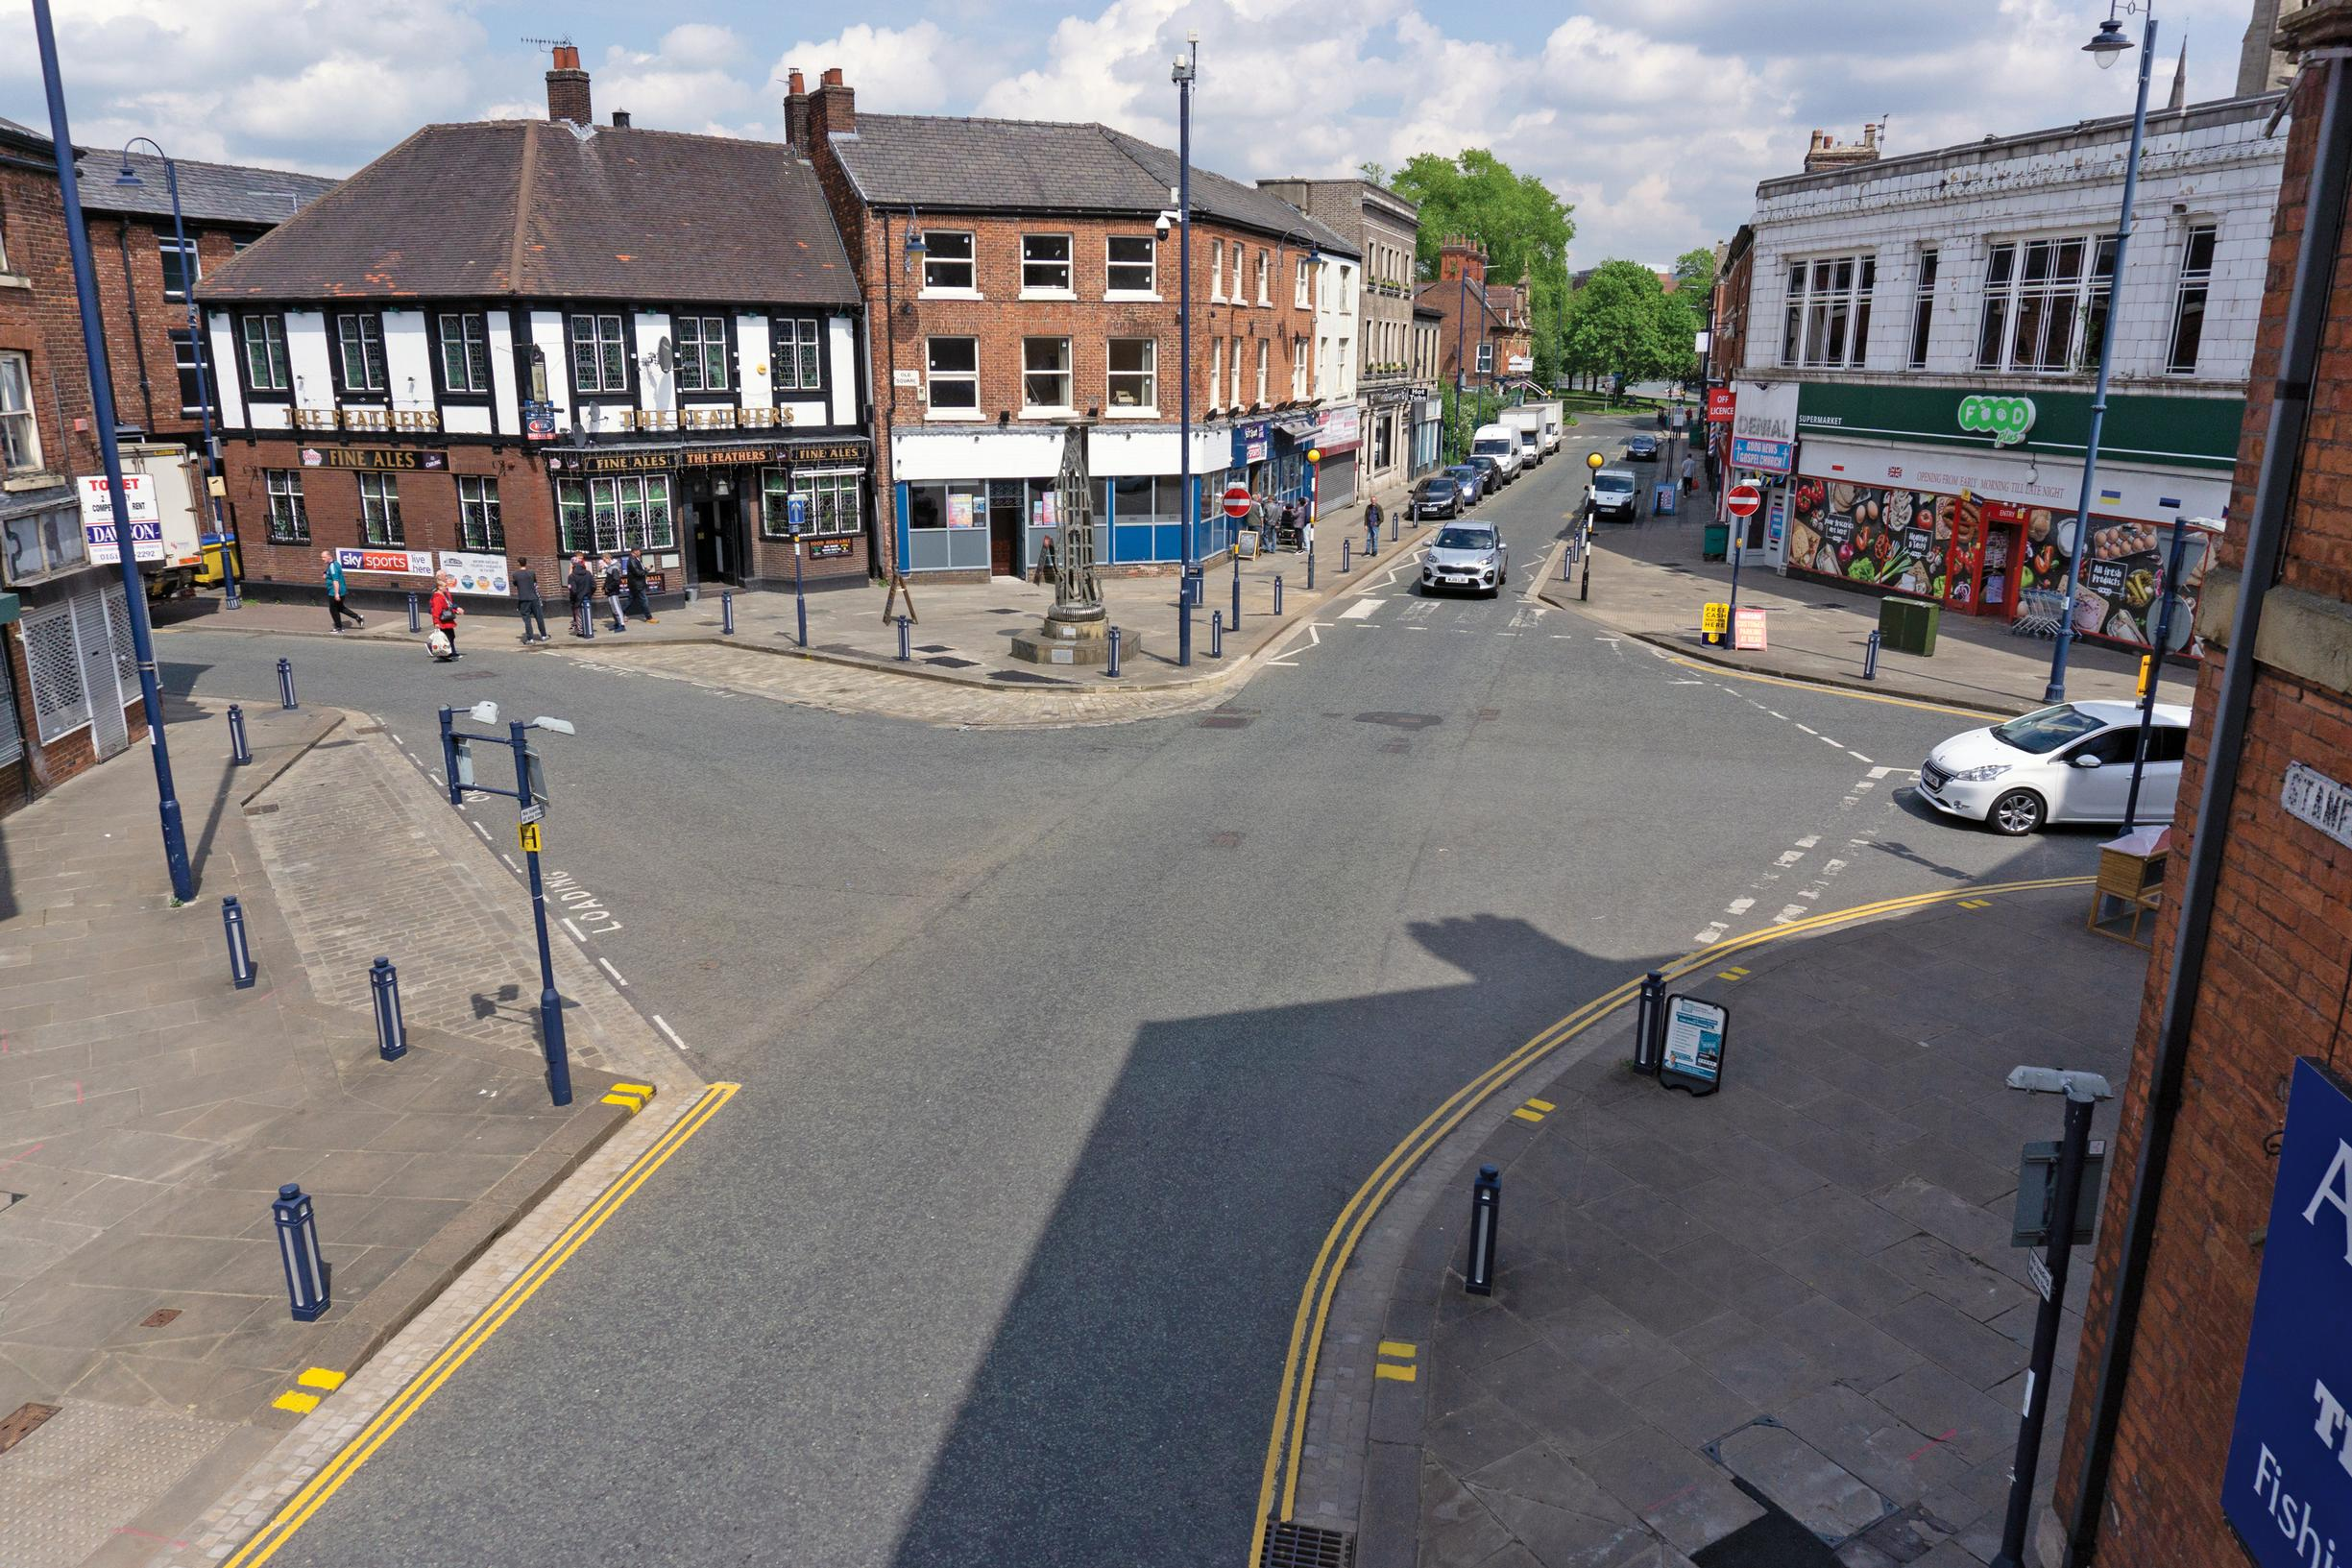 Stamford Street in Ashton-under-Lyne now (left) and how it should look after pedestrianisation. This is one of 57 Bee Network schemes approved for funding by the Greater Manchester Combined Authority